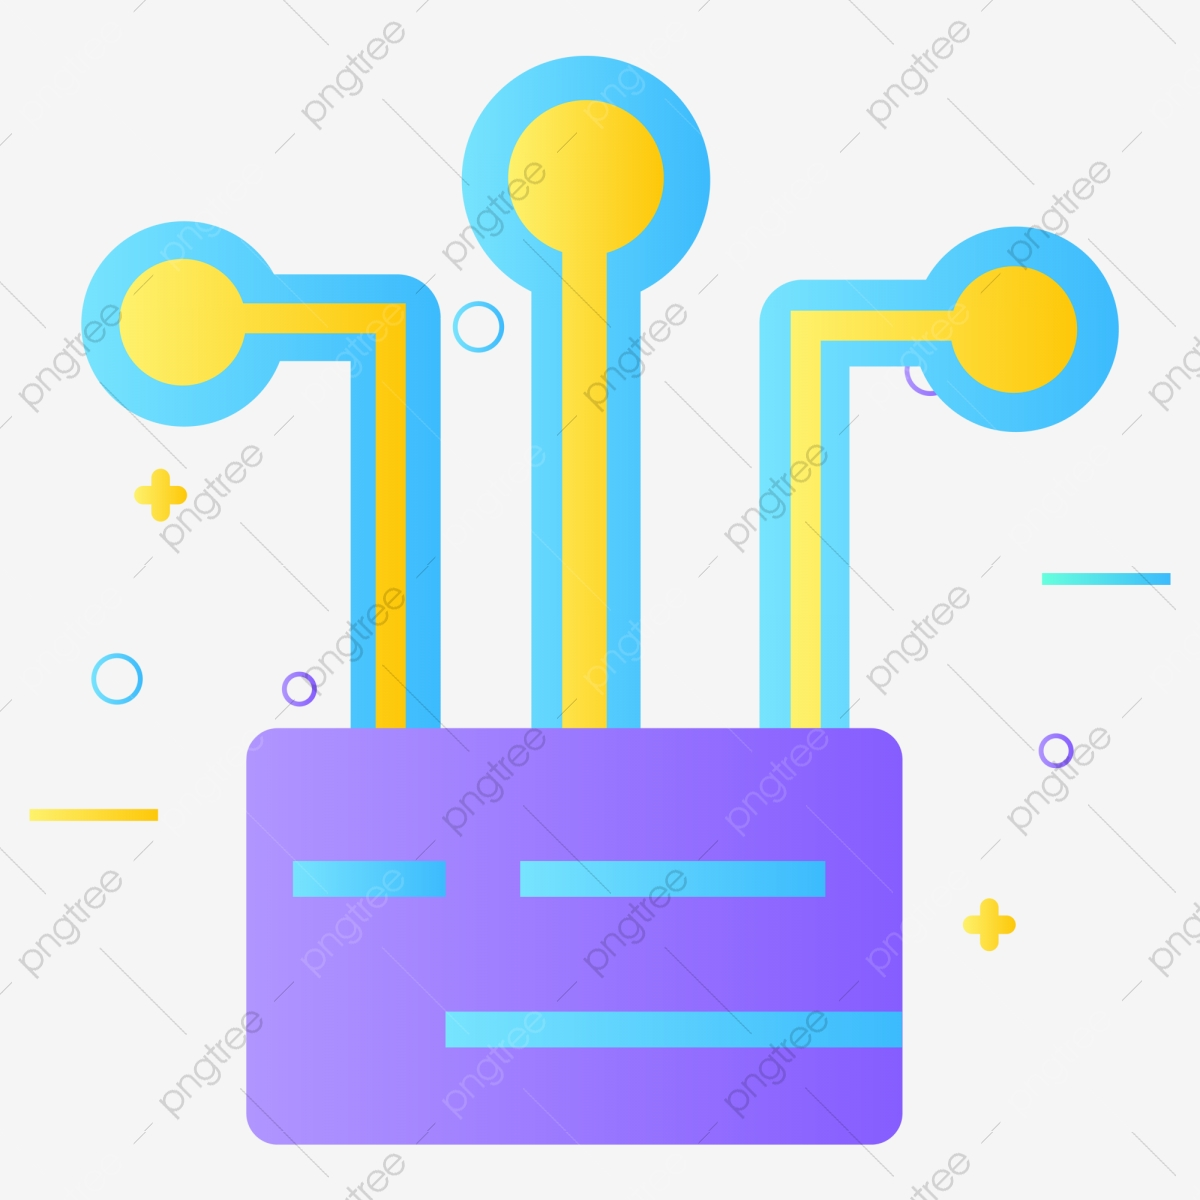 cartoon color data structure icon application cartoon data structure icon vector icon data knot png and vector with transparent background for free download https pngtree com freepng cartoon color data structure icon application 4429185 html